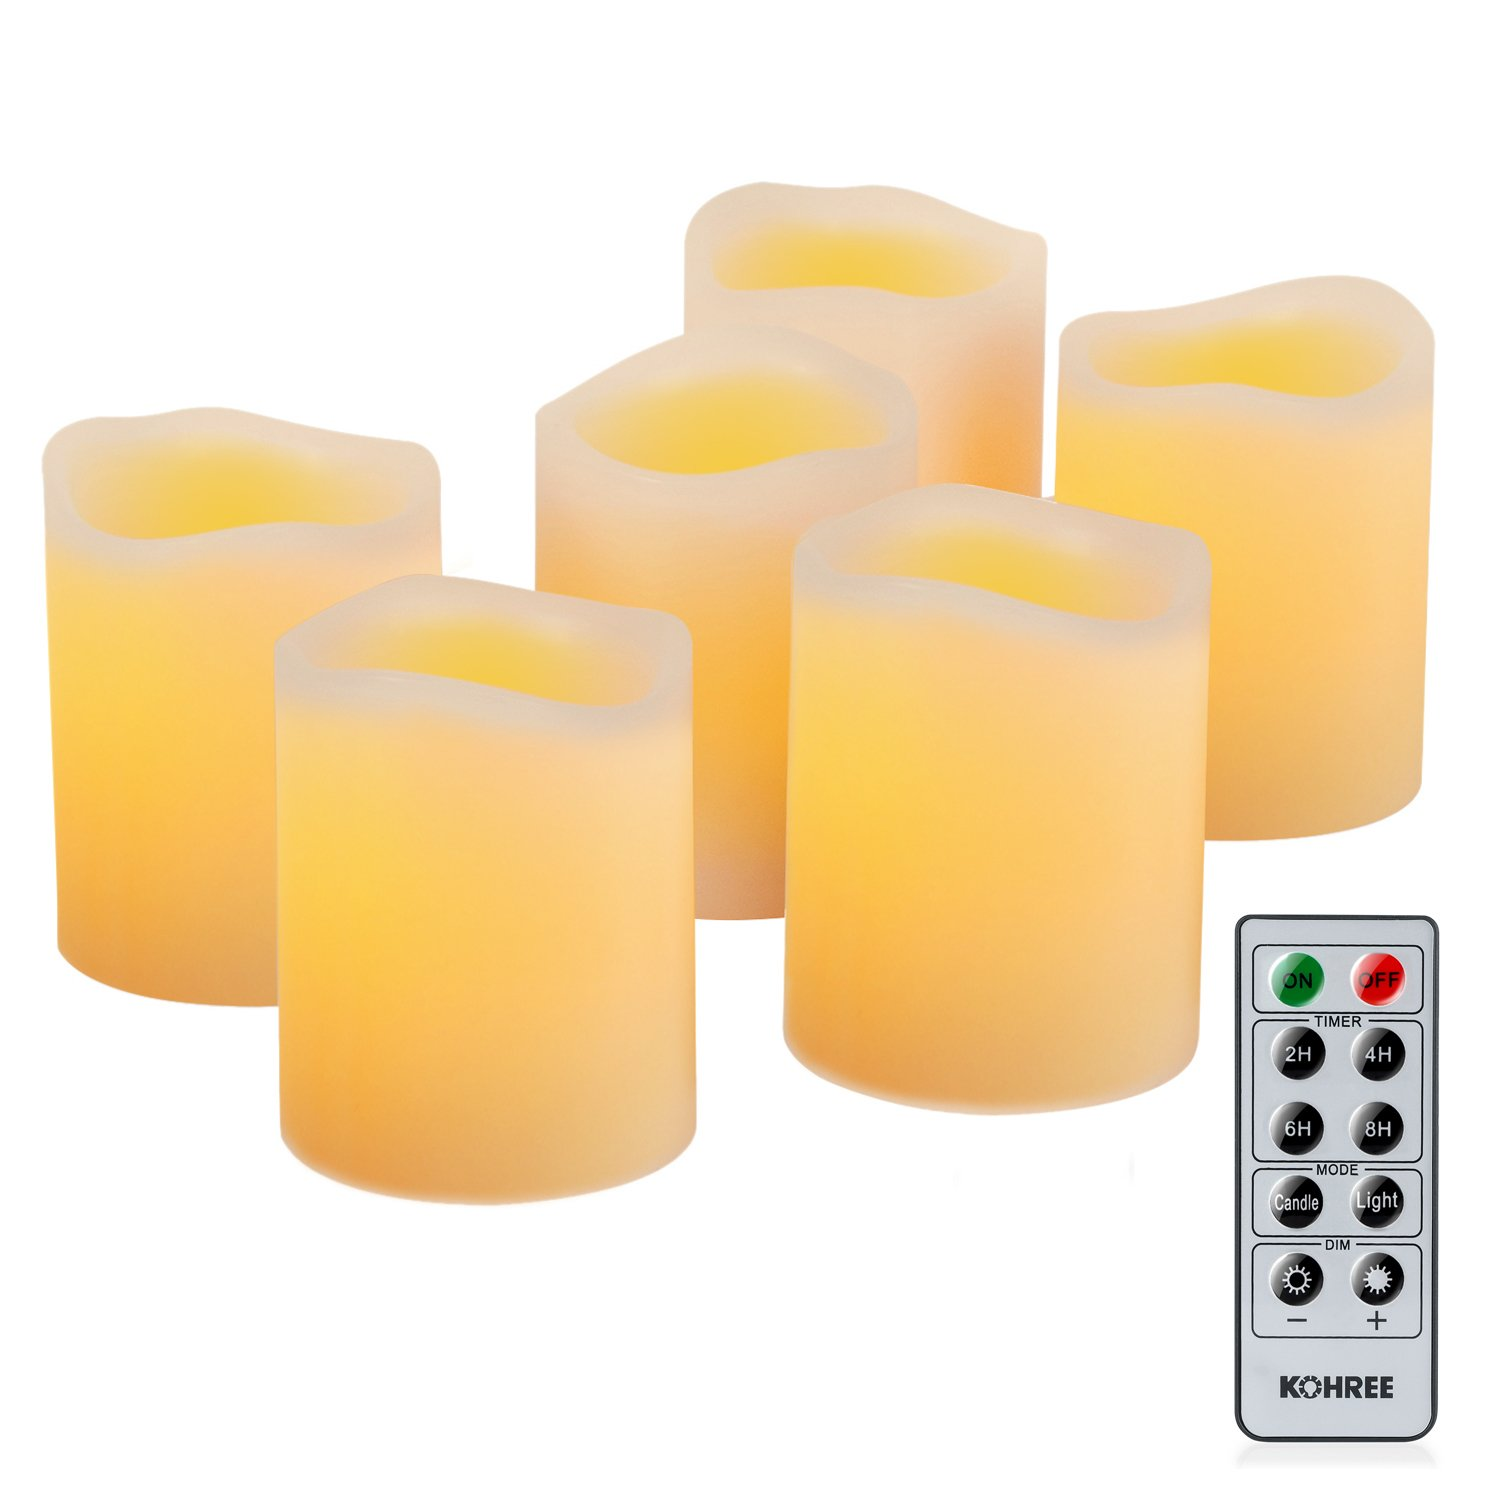 Kohree Real Wax Flameless LED Candles Remote Control Candles Battery Operated Retro Unscented Ivory Votive Pillar Candles Light, Warm White (Pack of 6)